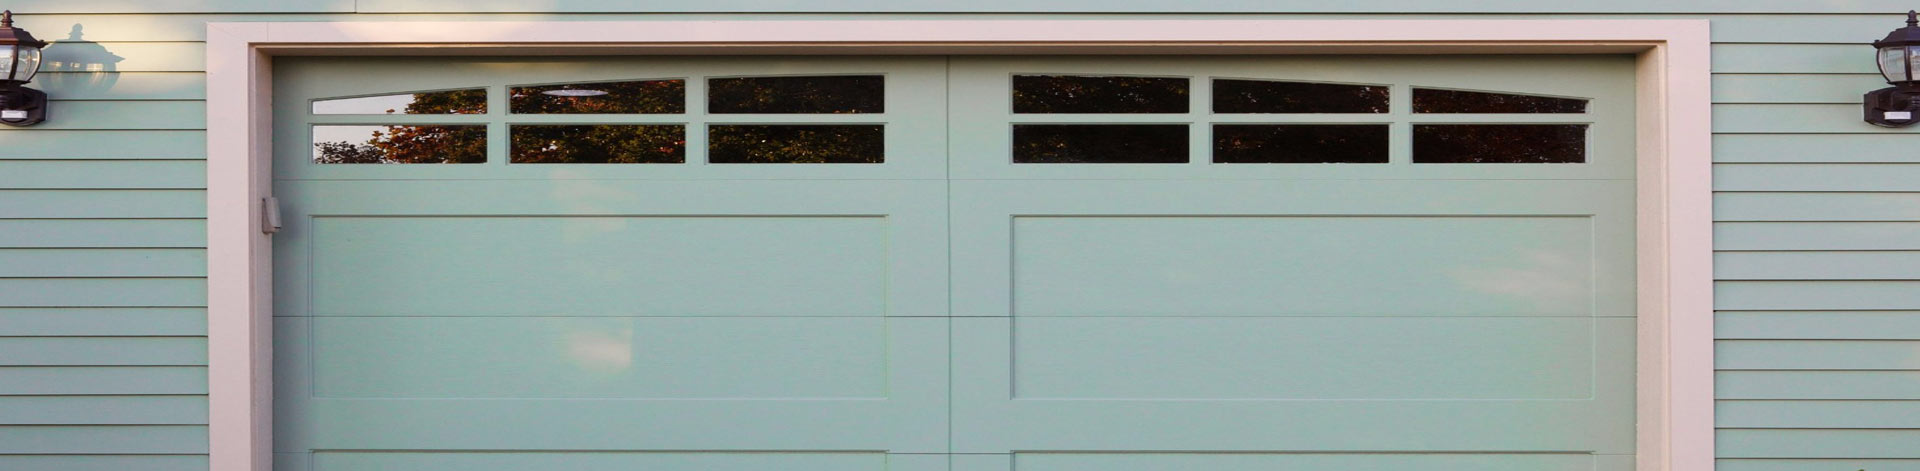 up parts doors tune door garage gates kaiser